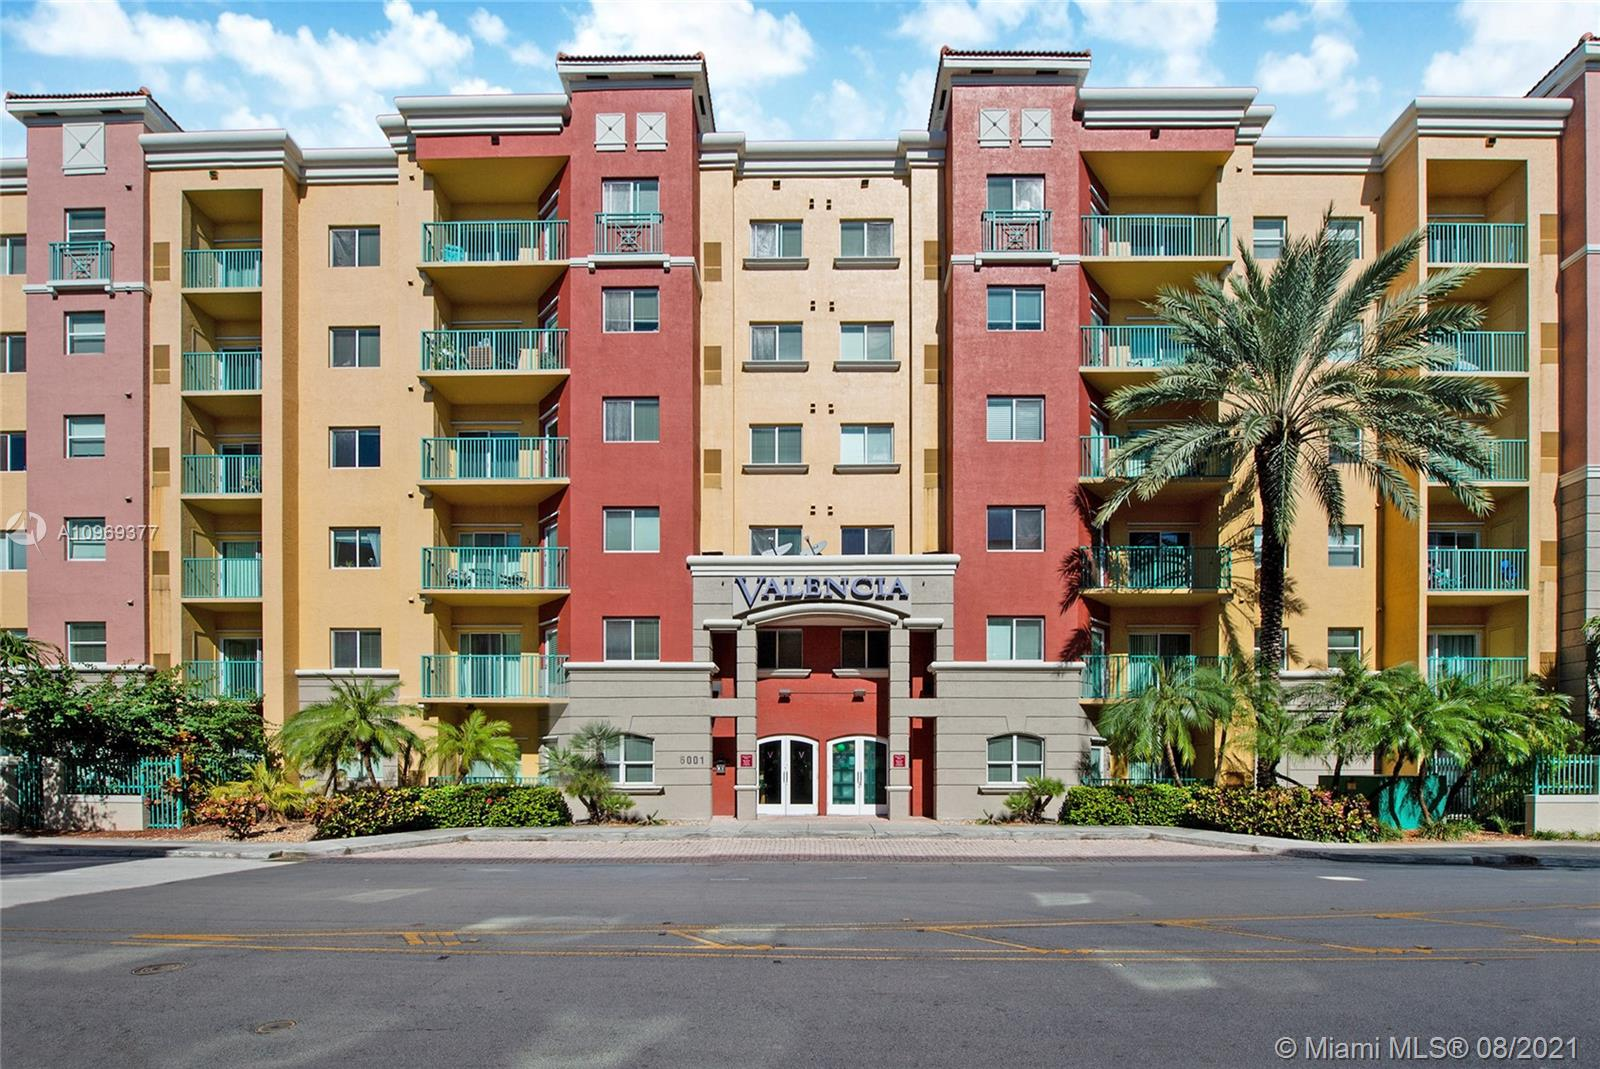 Beautifully remodeled unit in the heart of South Miami! Located within walking distance to the metro-rail station, local shopping centers, and hospitals. This unit features 2 bedrooms   1 bathroom, wood laminate flooring throughout, kitchen has granite counter tops and the bathrooms was just remodeled in December of 2020. Building amenities include pool, gym, basic cable, water, security, elevator, covered parking, and all other common areas.